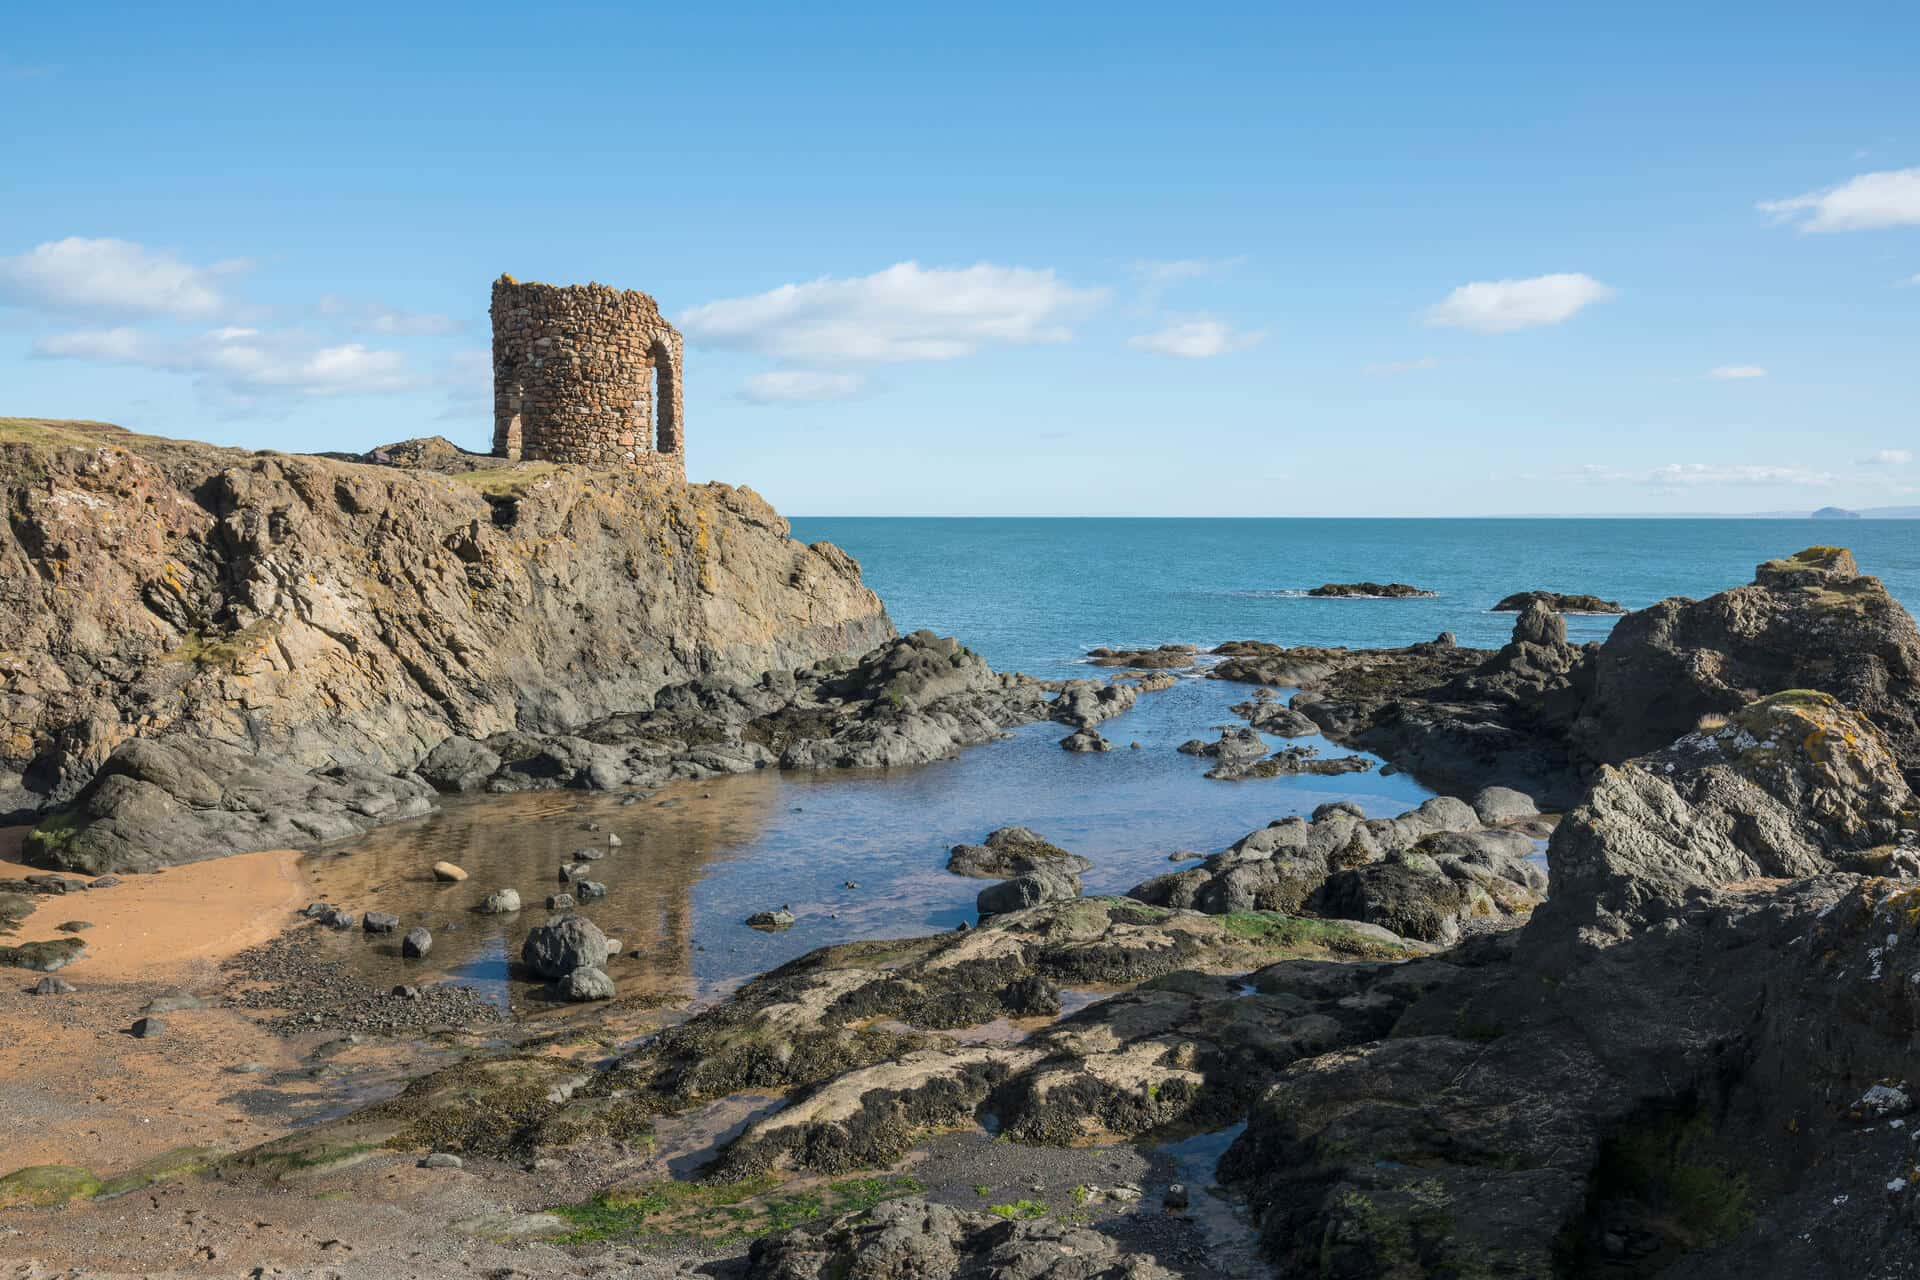 Lady's Tower was built in Ruby Bay, on the east side of Elie Ness, walking in fife